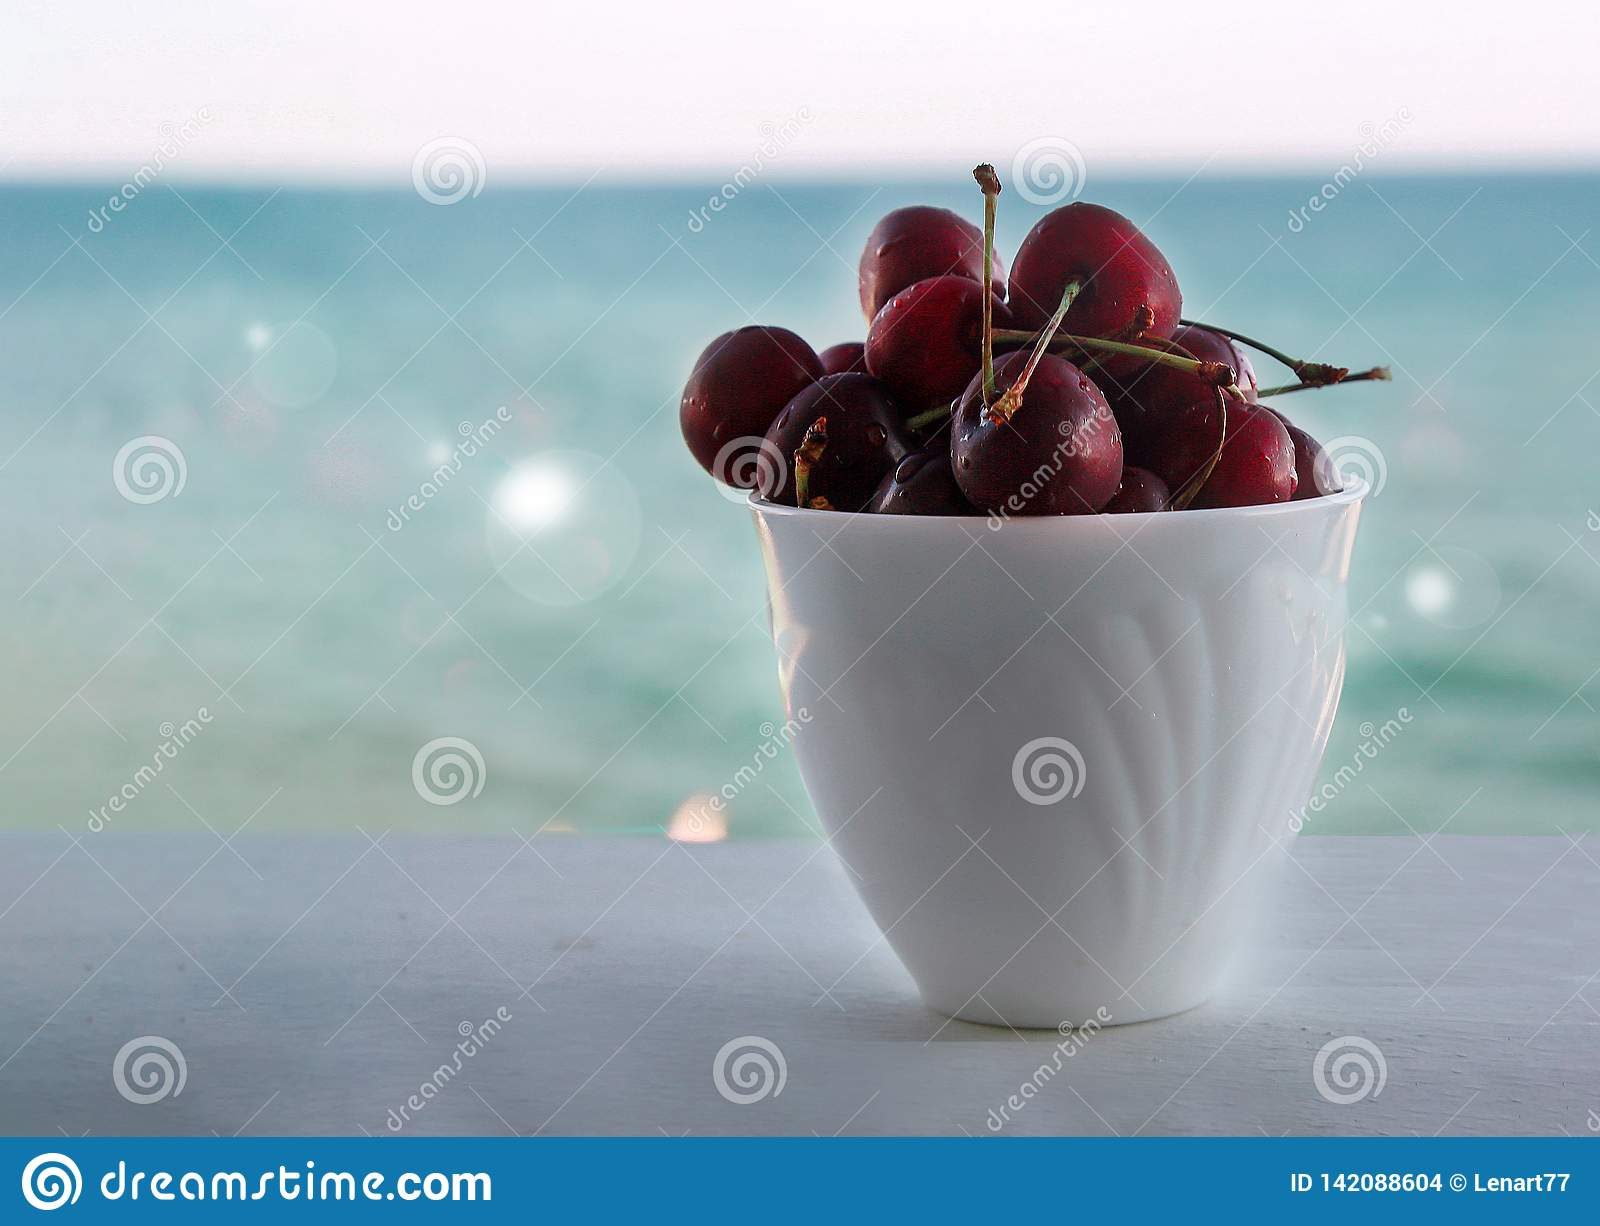 Cherries in the Cup